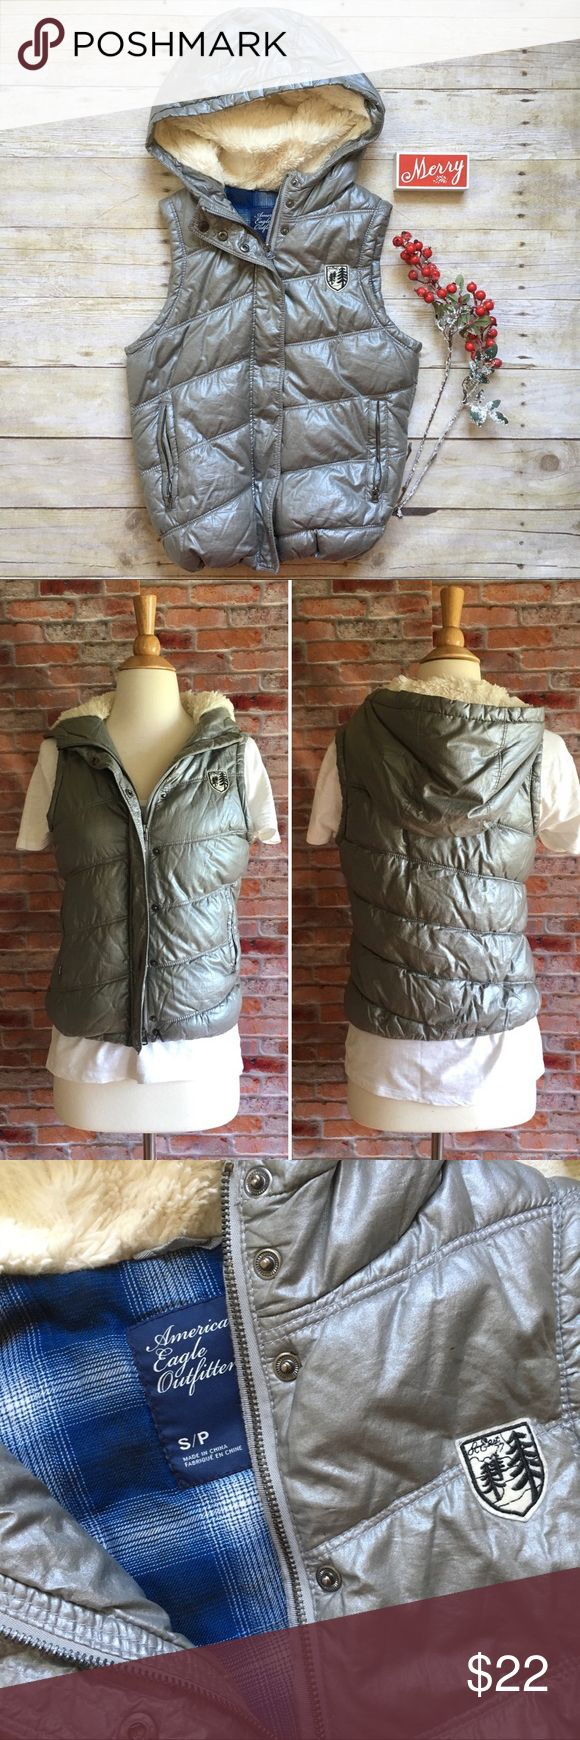 "American Eagle silver hooded puffer vest Layer this silver vest over a long sleeve tee or sweater whenever you need a little extra warmth. Zip front with snap closures. Fleece lined hood. Two front zip pockets. Elastic cinch waist. In excellent condition.  22""L.  17.5"" bust laying flat. Size small. American Eagle Outfitters Jackets & Coats Vests"